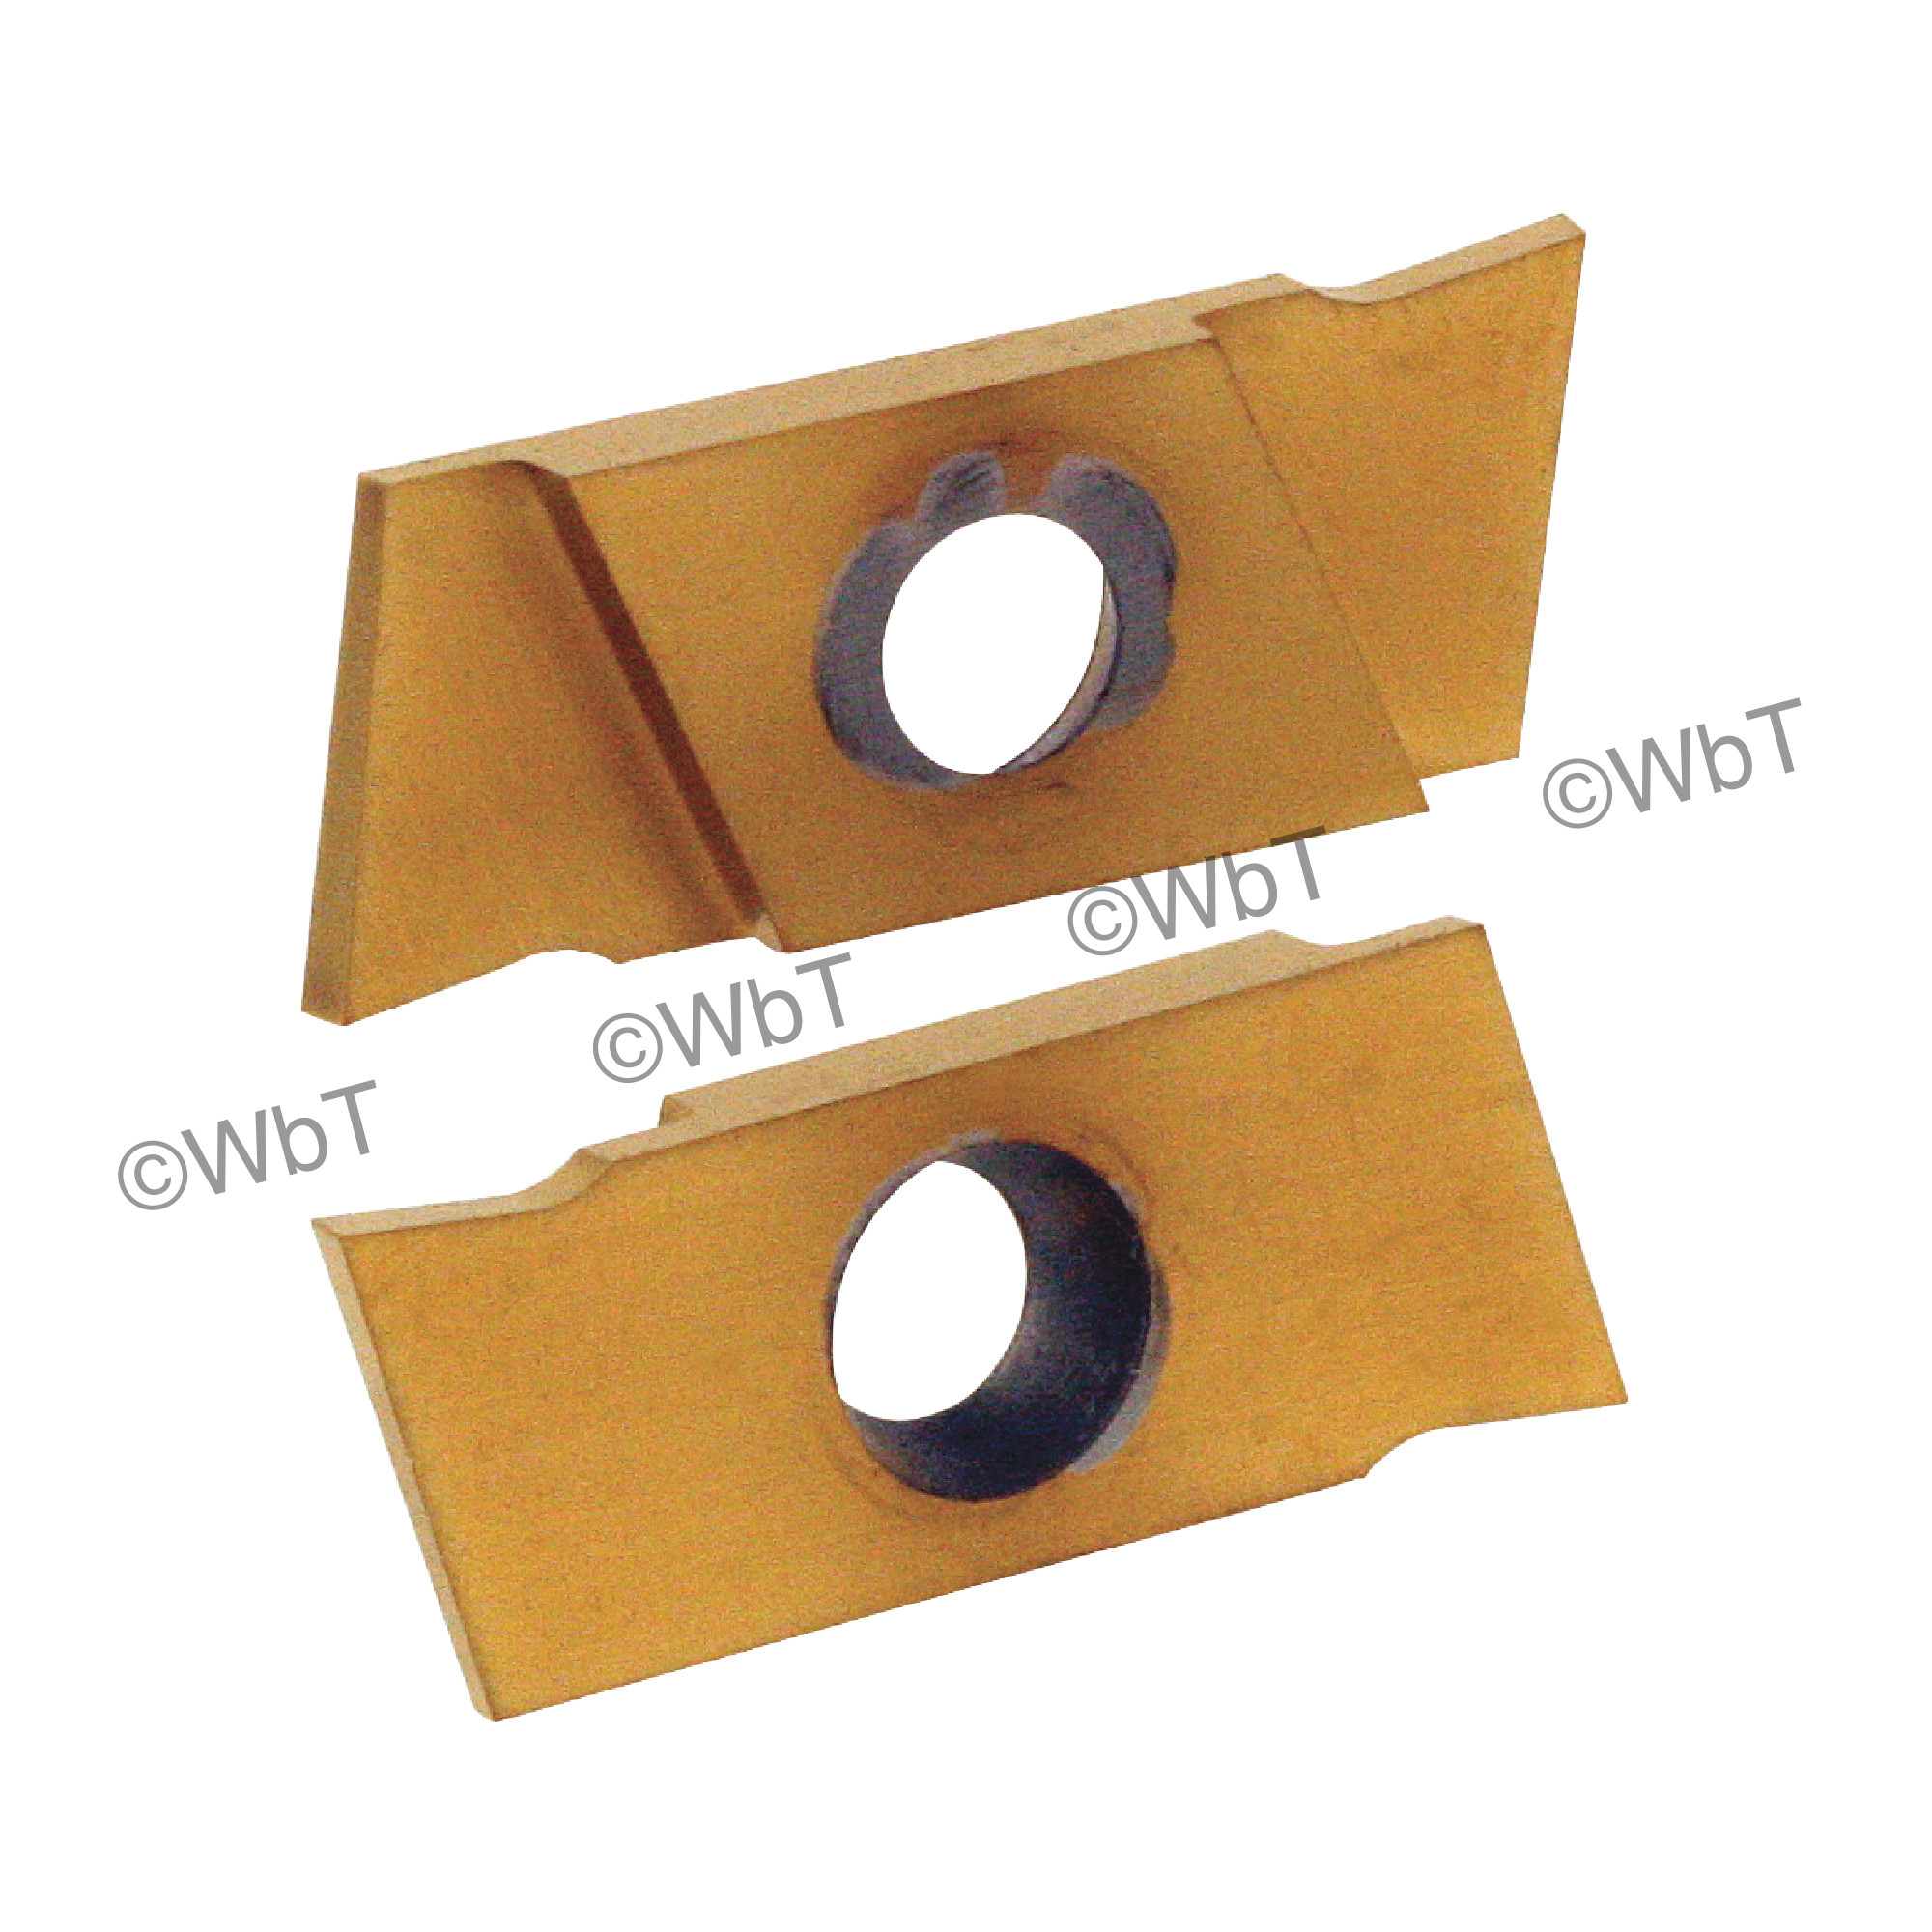 """NIKCOLE - GIE-7-GP-1.0RL C5-PV / Indexable Carbide Insert for Grooving & Parting / 0.039"""" Cutting Width / Right Hand"""